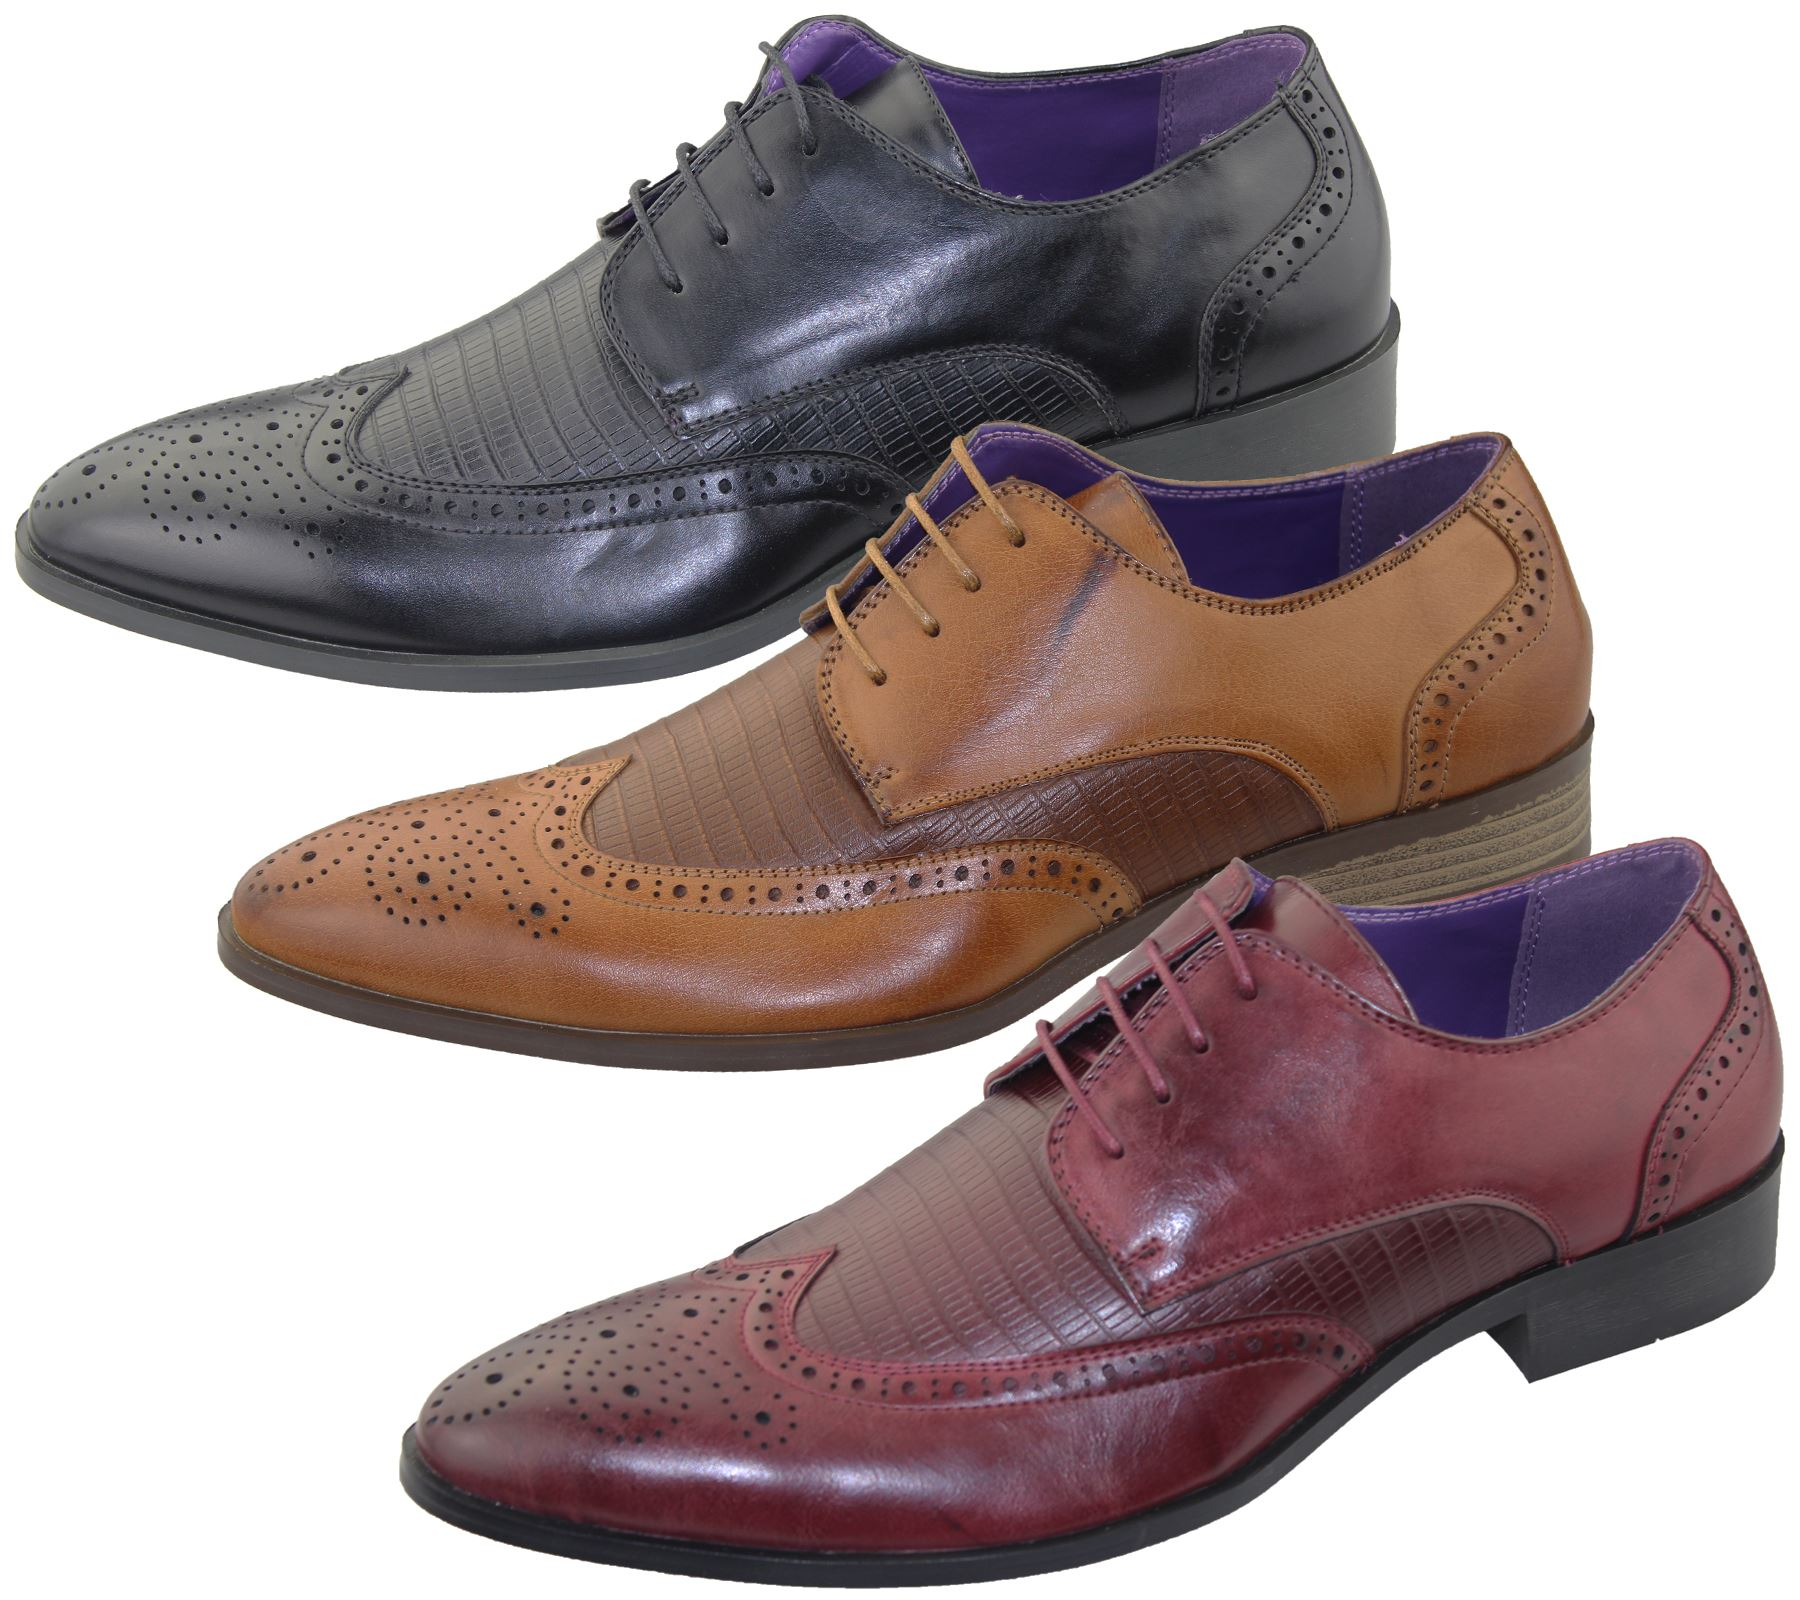 Details about  /Mens Business Slip On Brogues Shoes Formal Smart Casual Office Dress Shoes Sizes